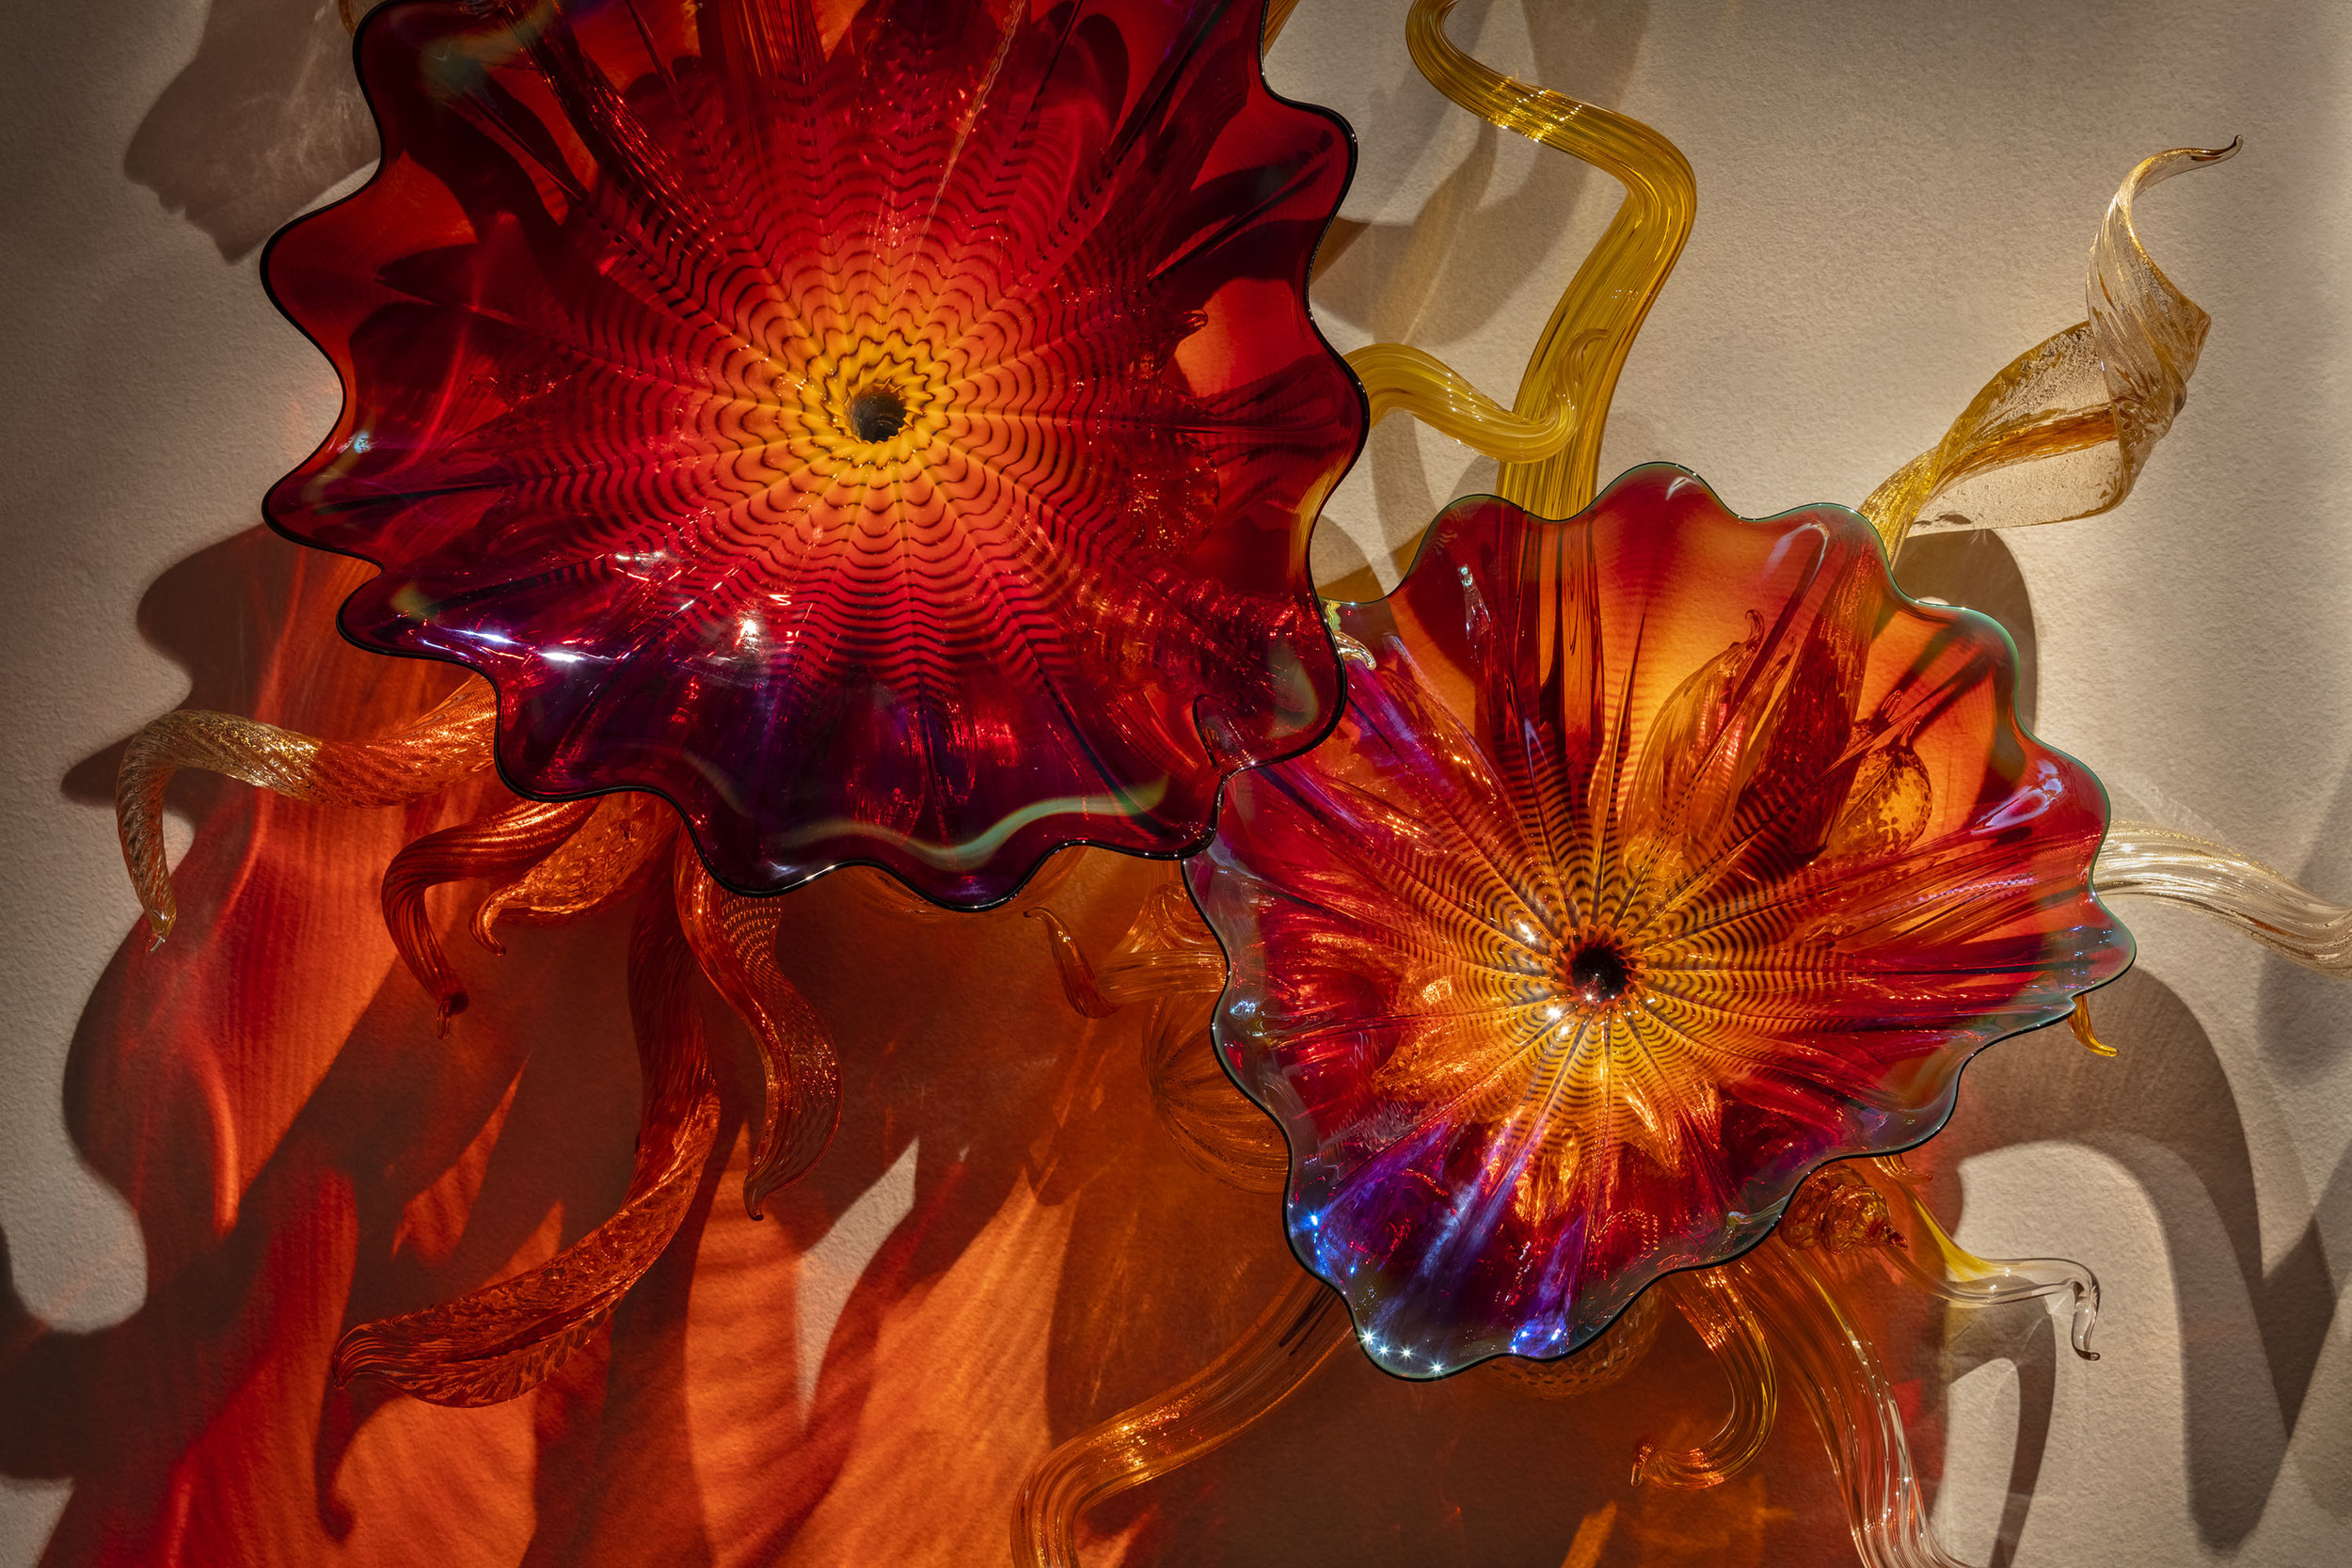 """Dale Chihuly,  Copper Ruby Persian Wall Sconce  (detail), 2019, 61 x 85 x 14"""" ©Chihuly Studio"""